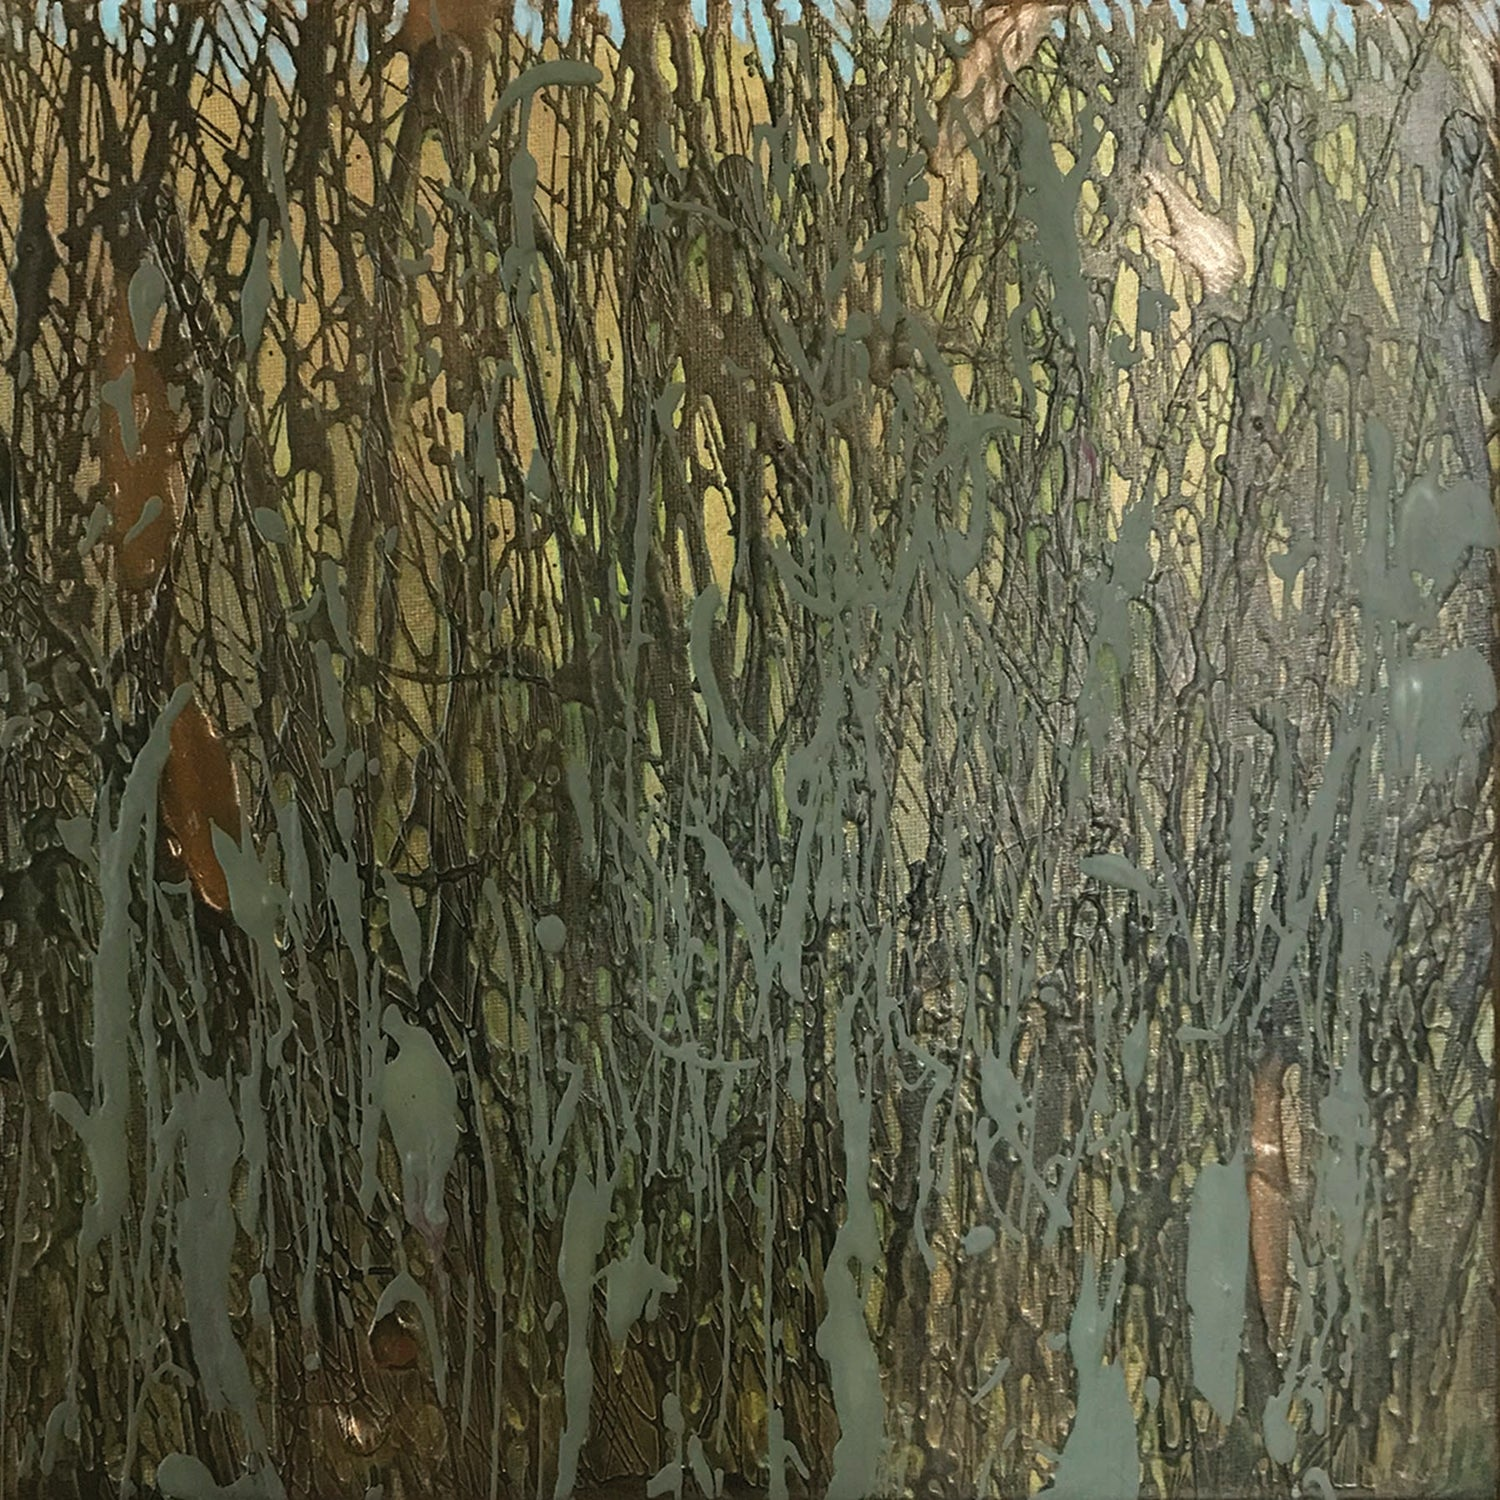 Image of Lilies of the Marsh